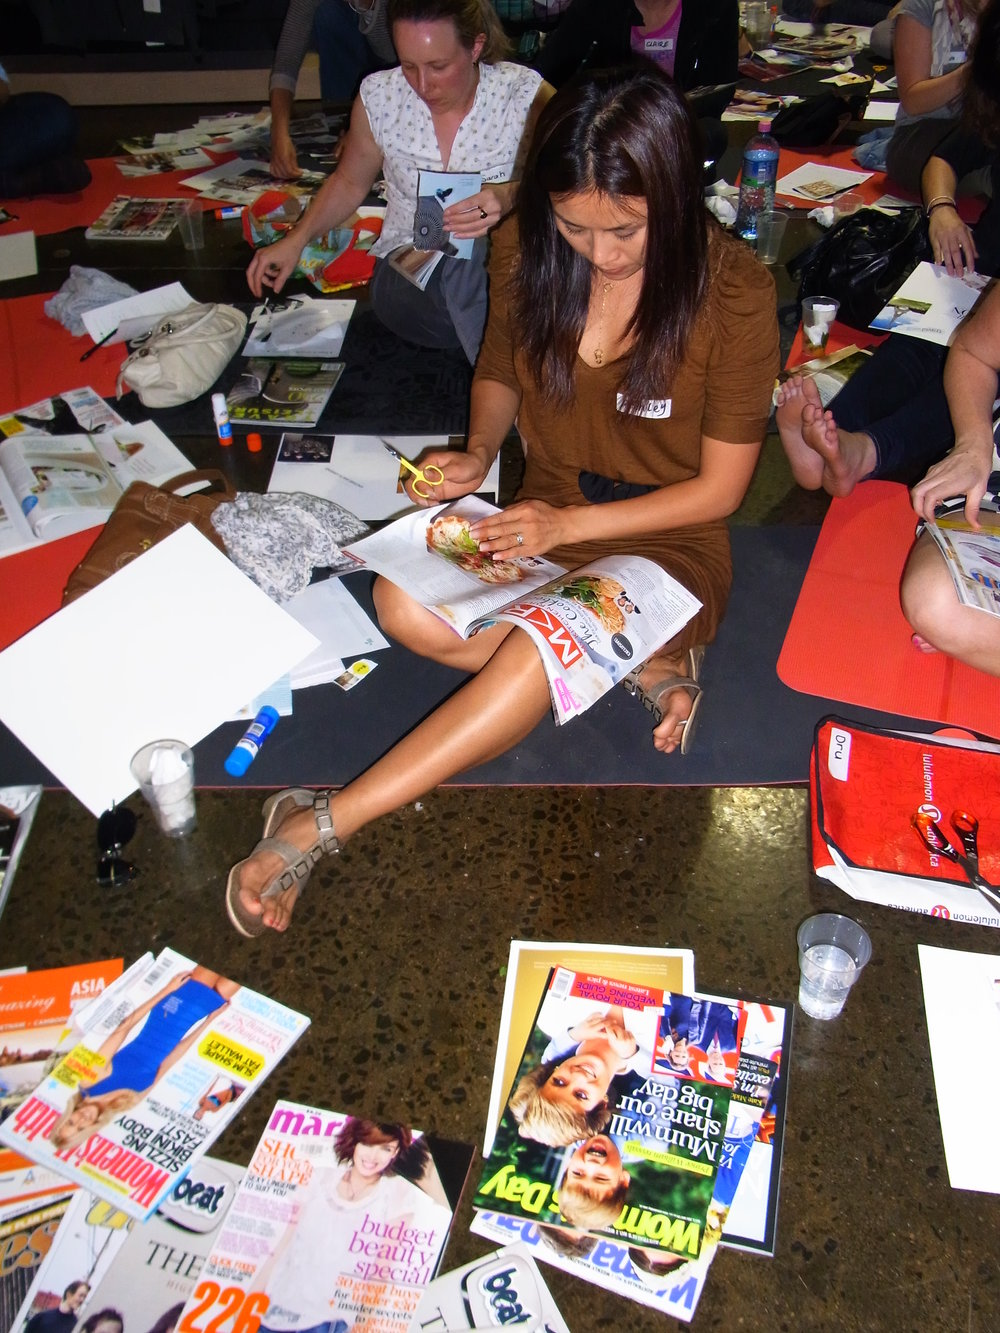 Vision board workshop inspired life creative visioning creation pippa-la pippa doube creativity